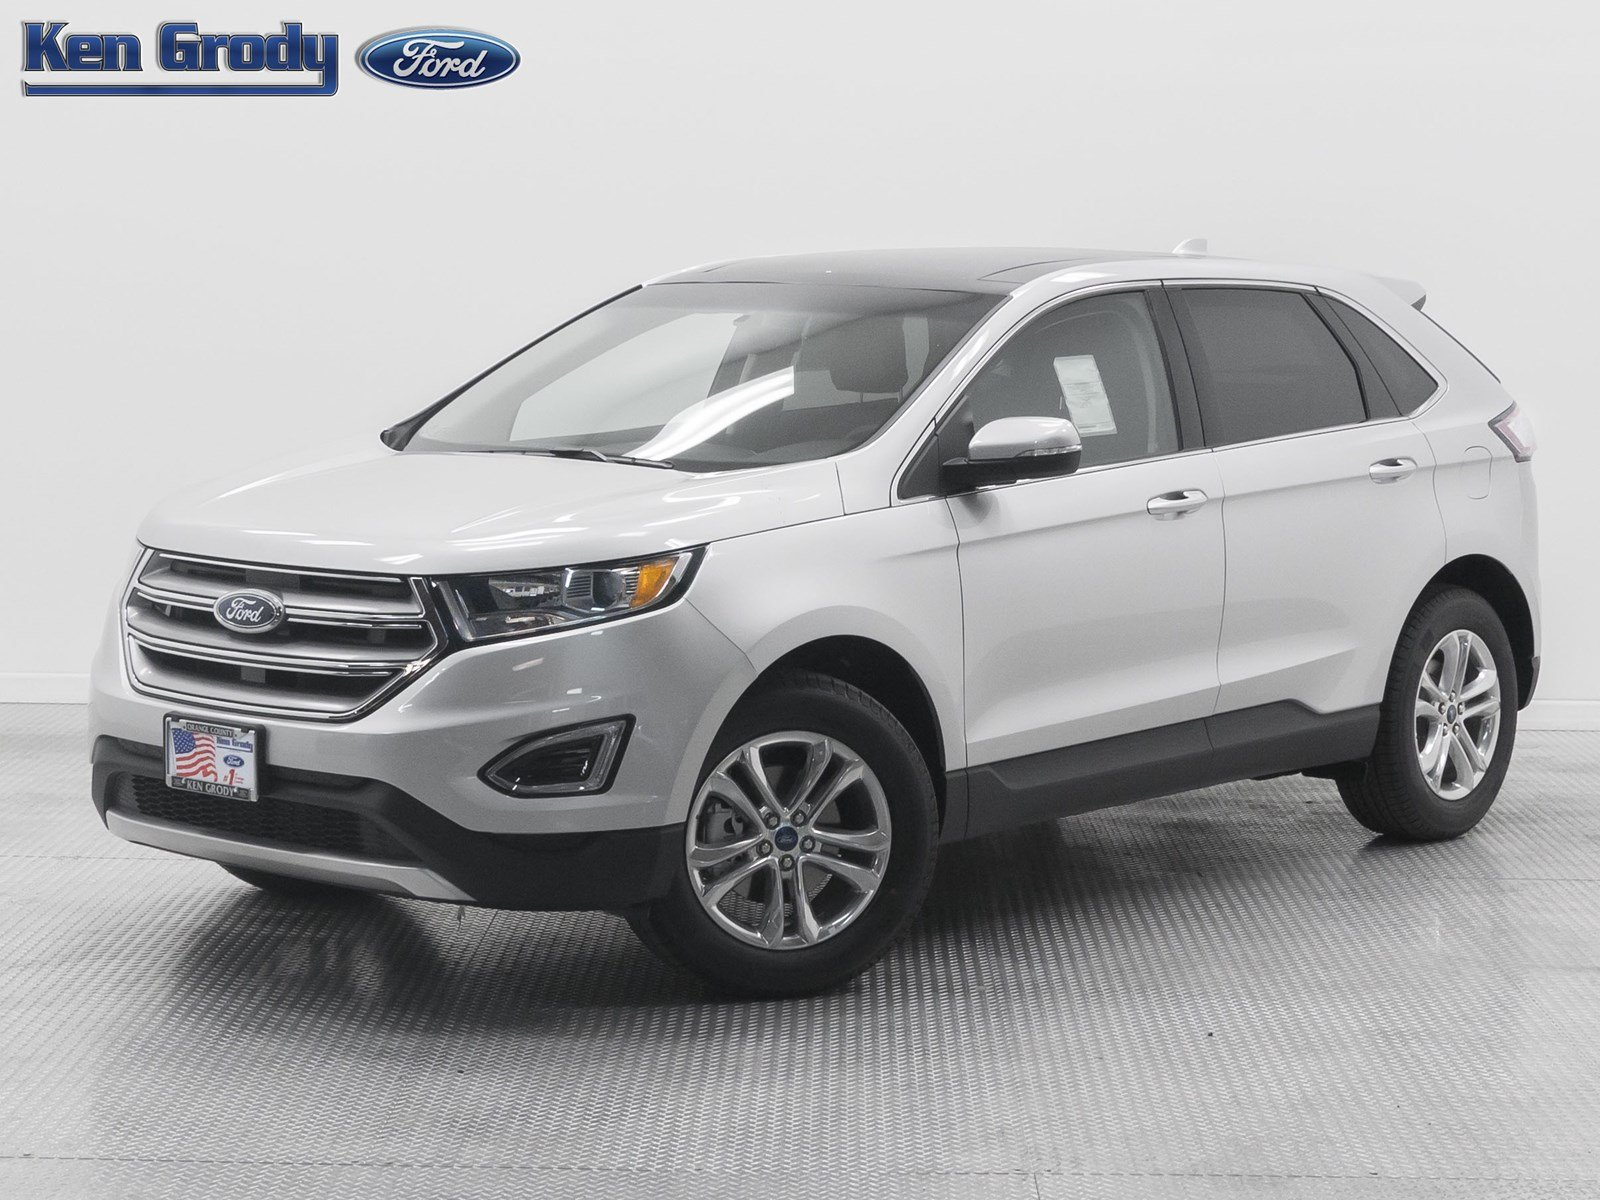 New 2017 Ford Edge SEL Sport Utility in Buena Park 84539  Ken